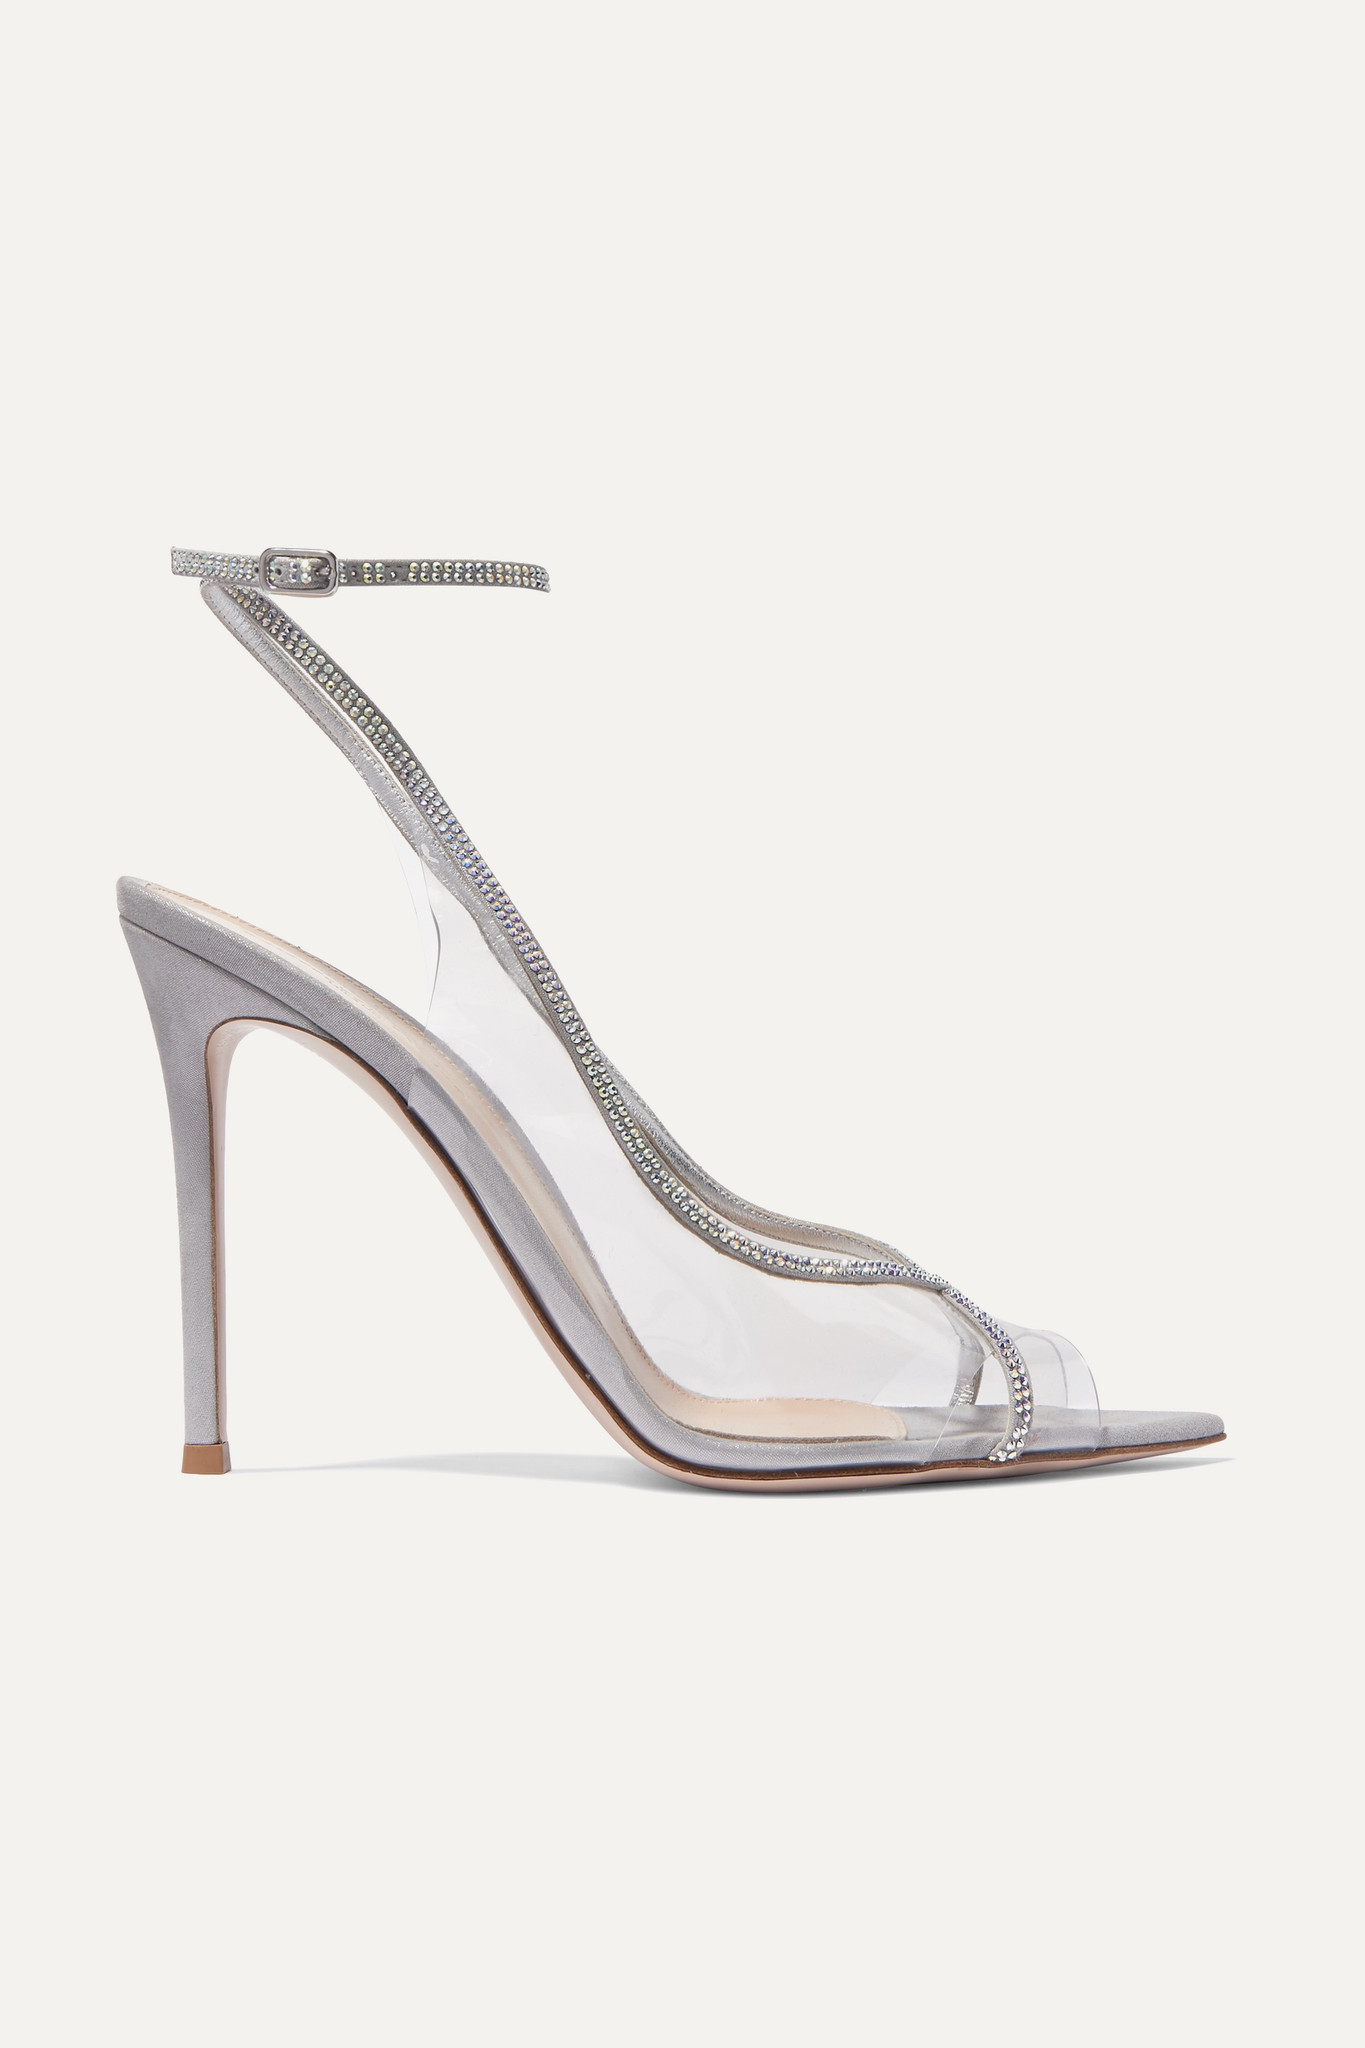 GIANVITO ROSSI - Plexi 105 Crystal-embellished Lamé And Pvc Sandals - Silver - IT39.5